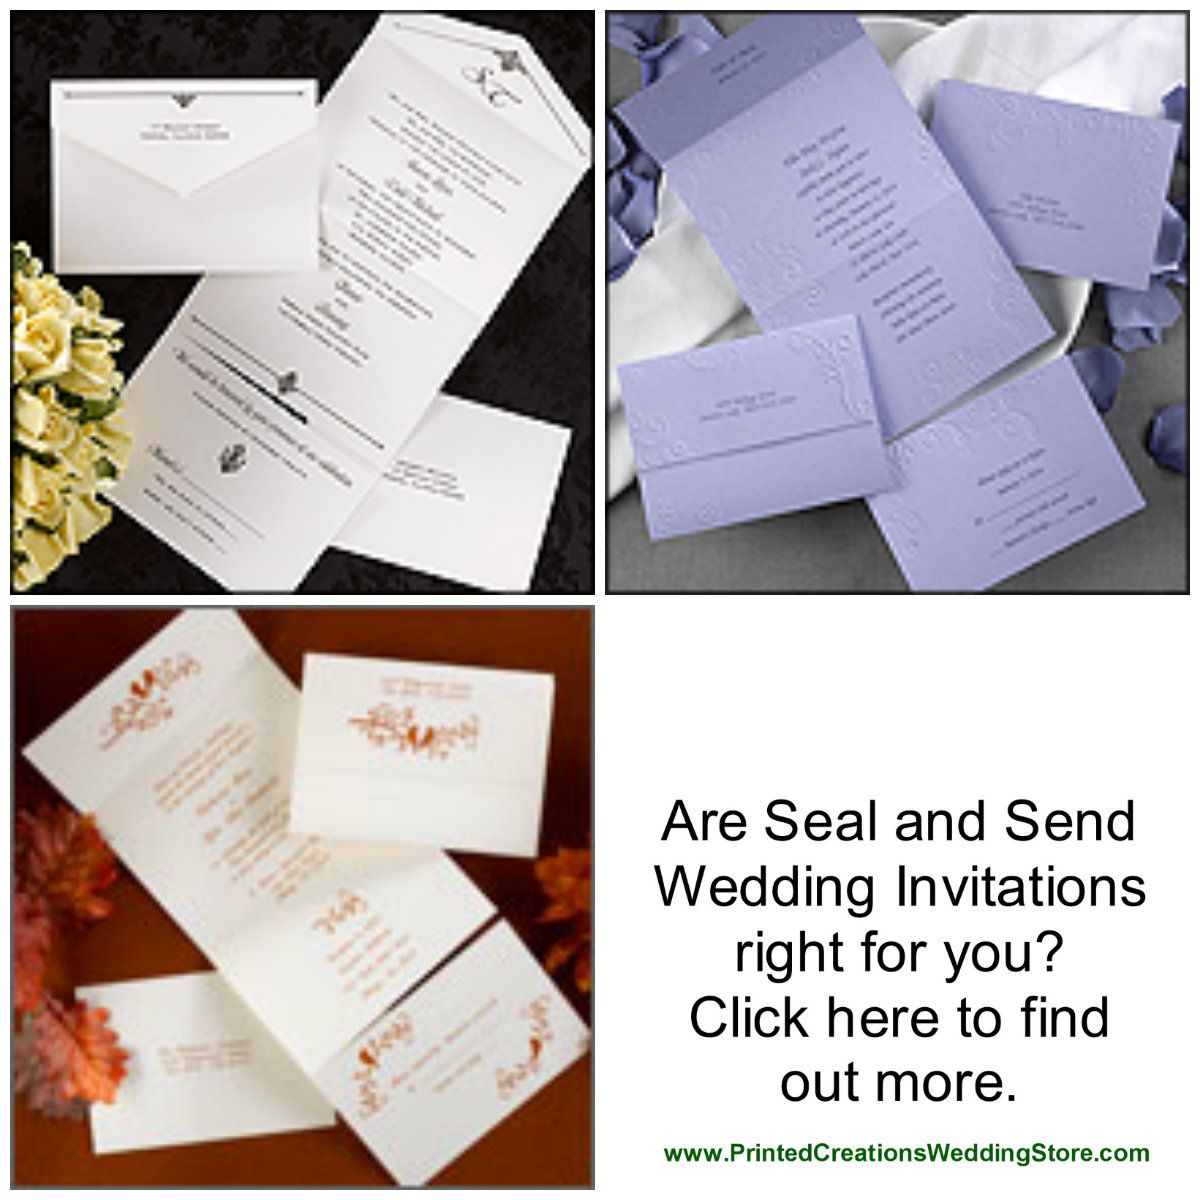 Seal n Send wedding invitations by Carlson Craft - see more designs ...